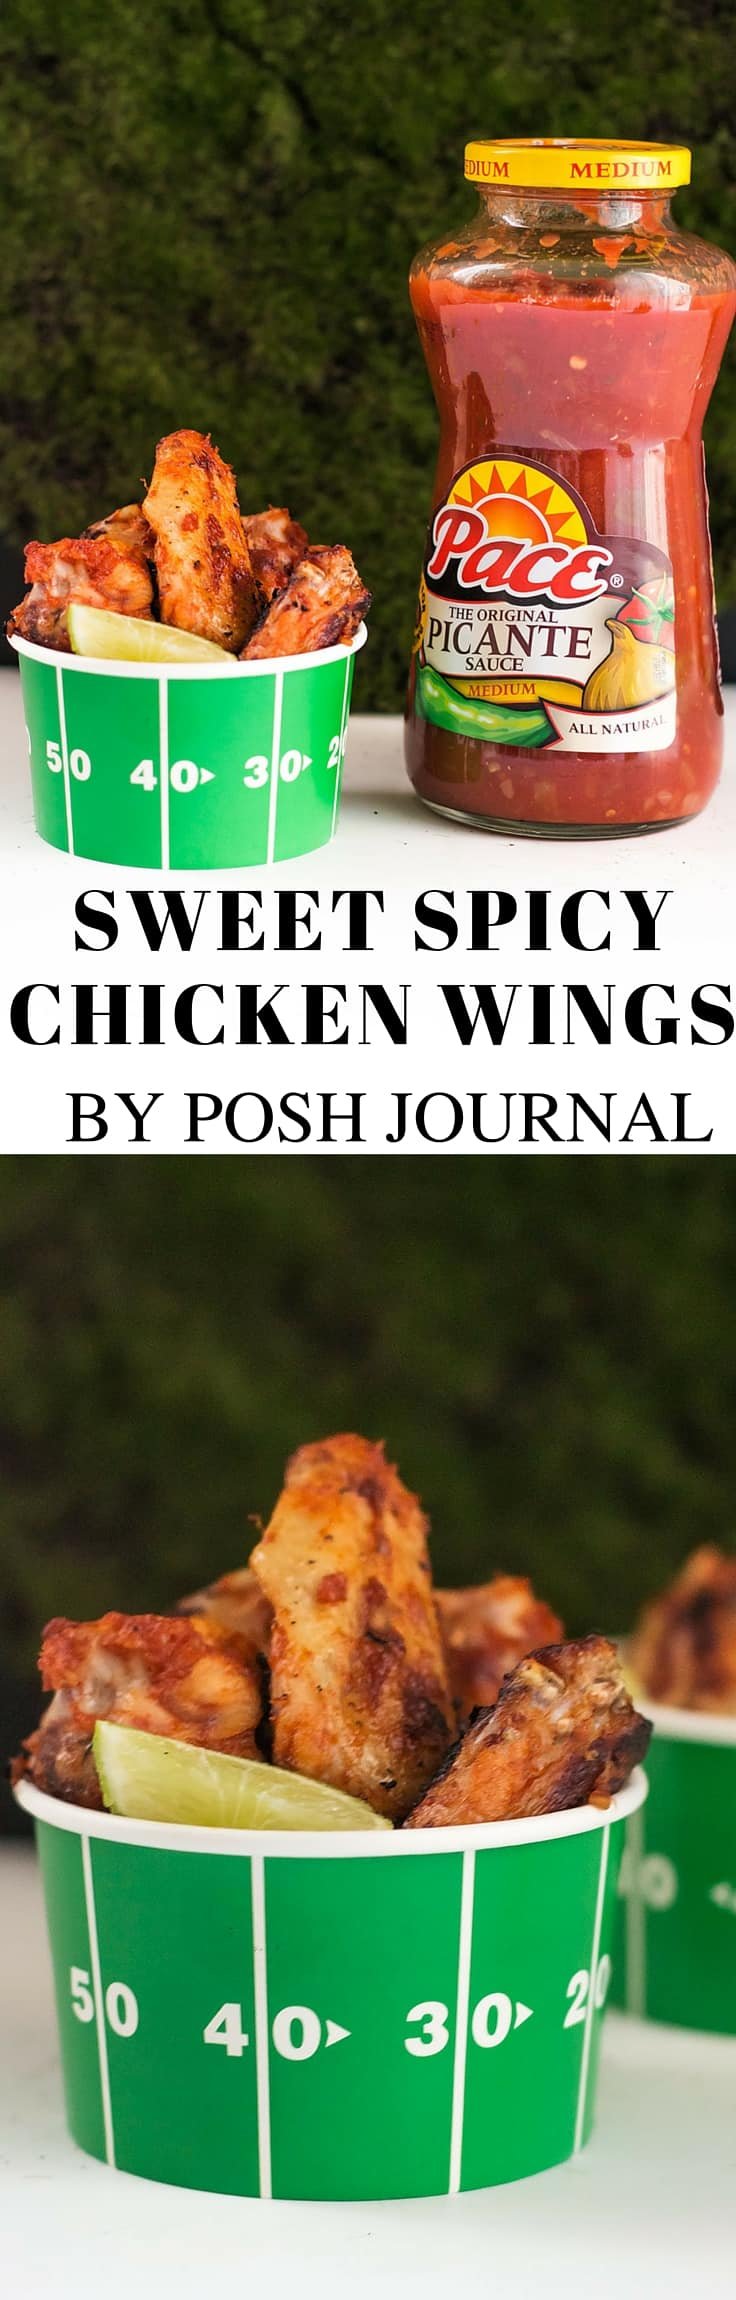 SWEET SPICY CHICKEN WINGS PINTEREST